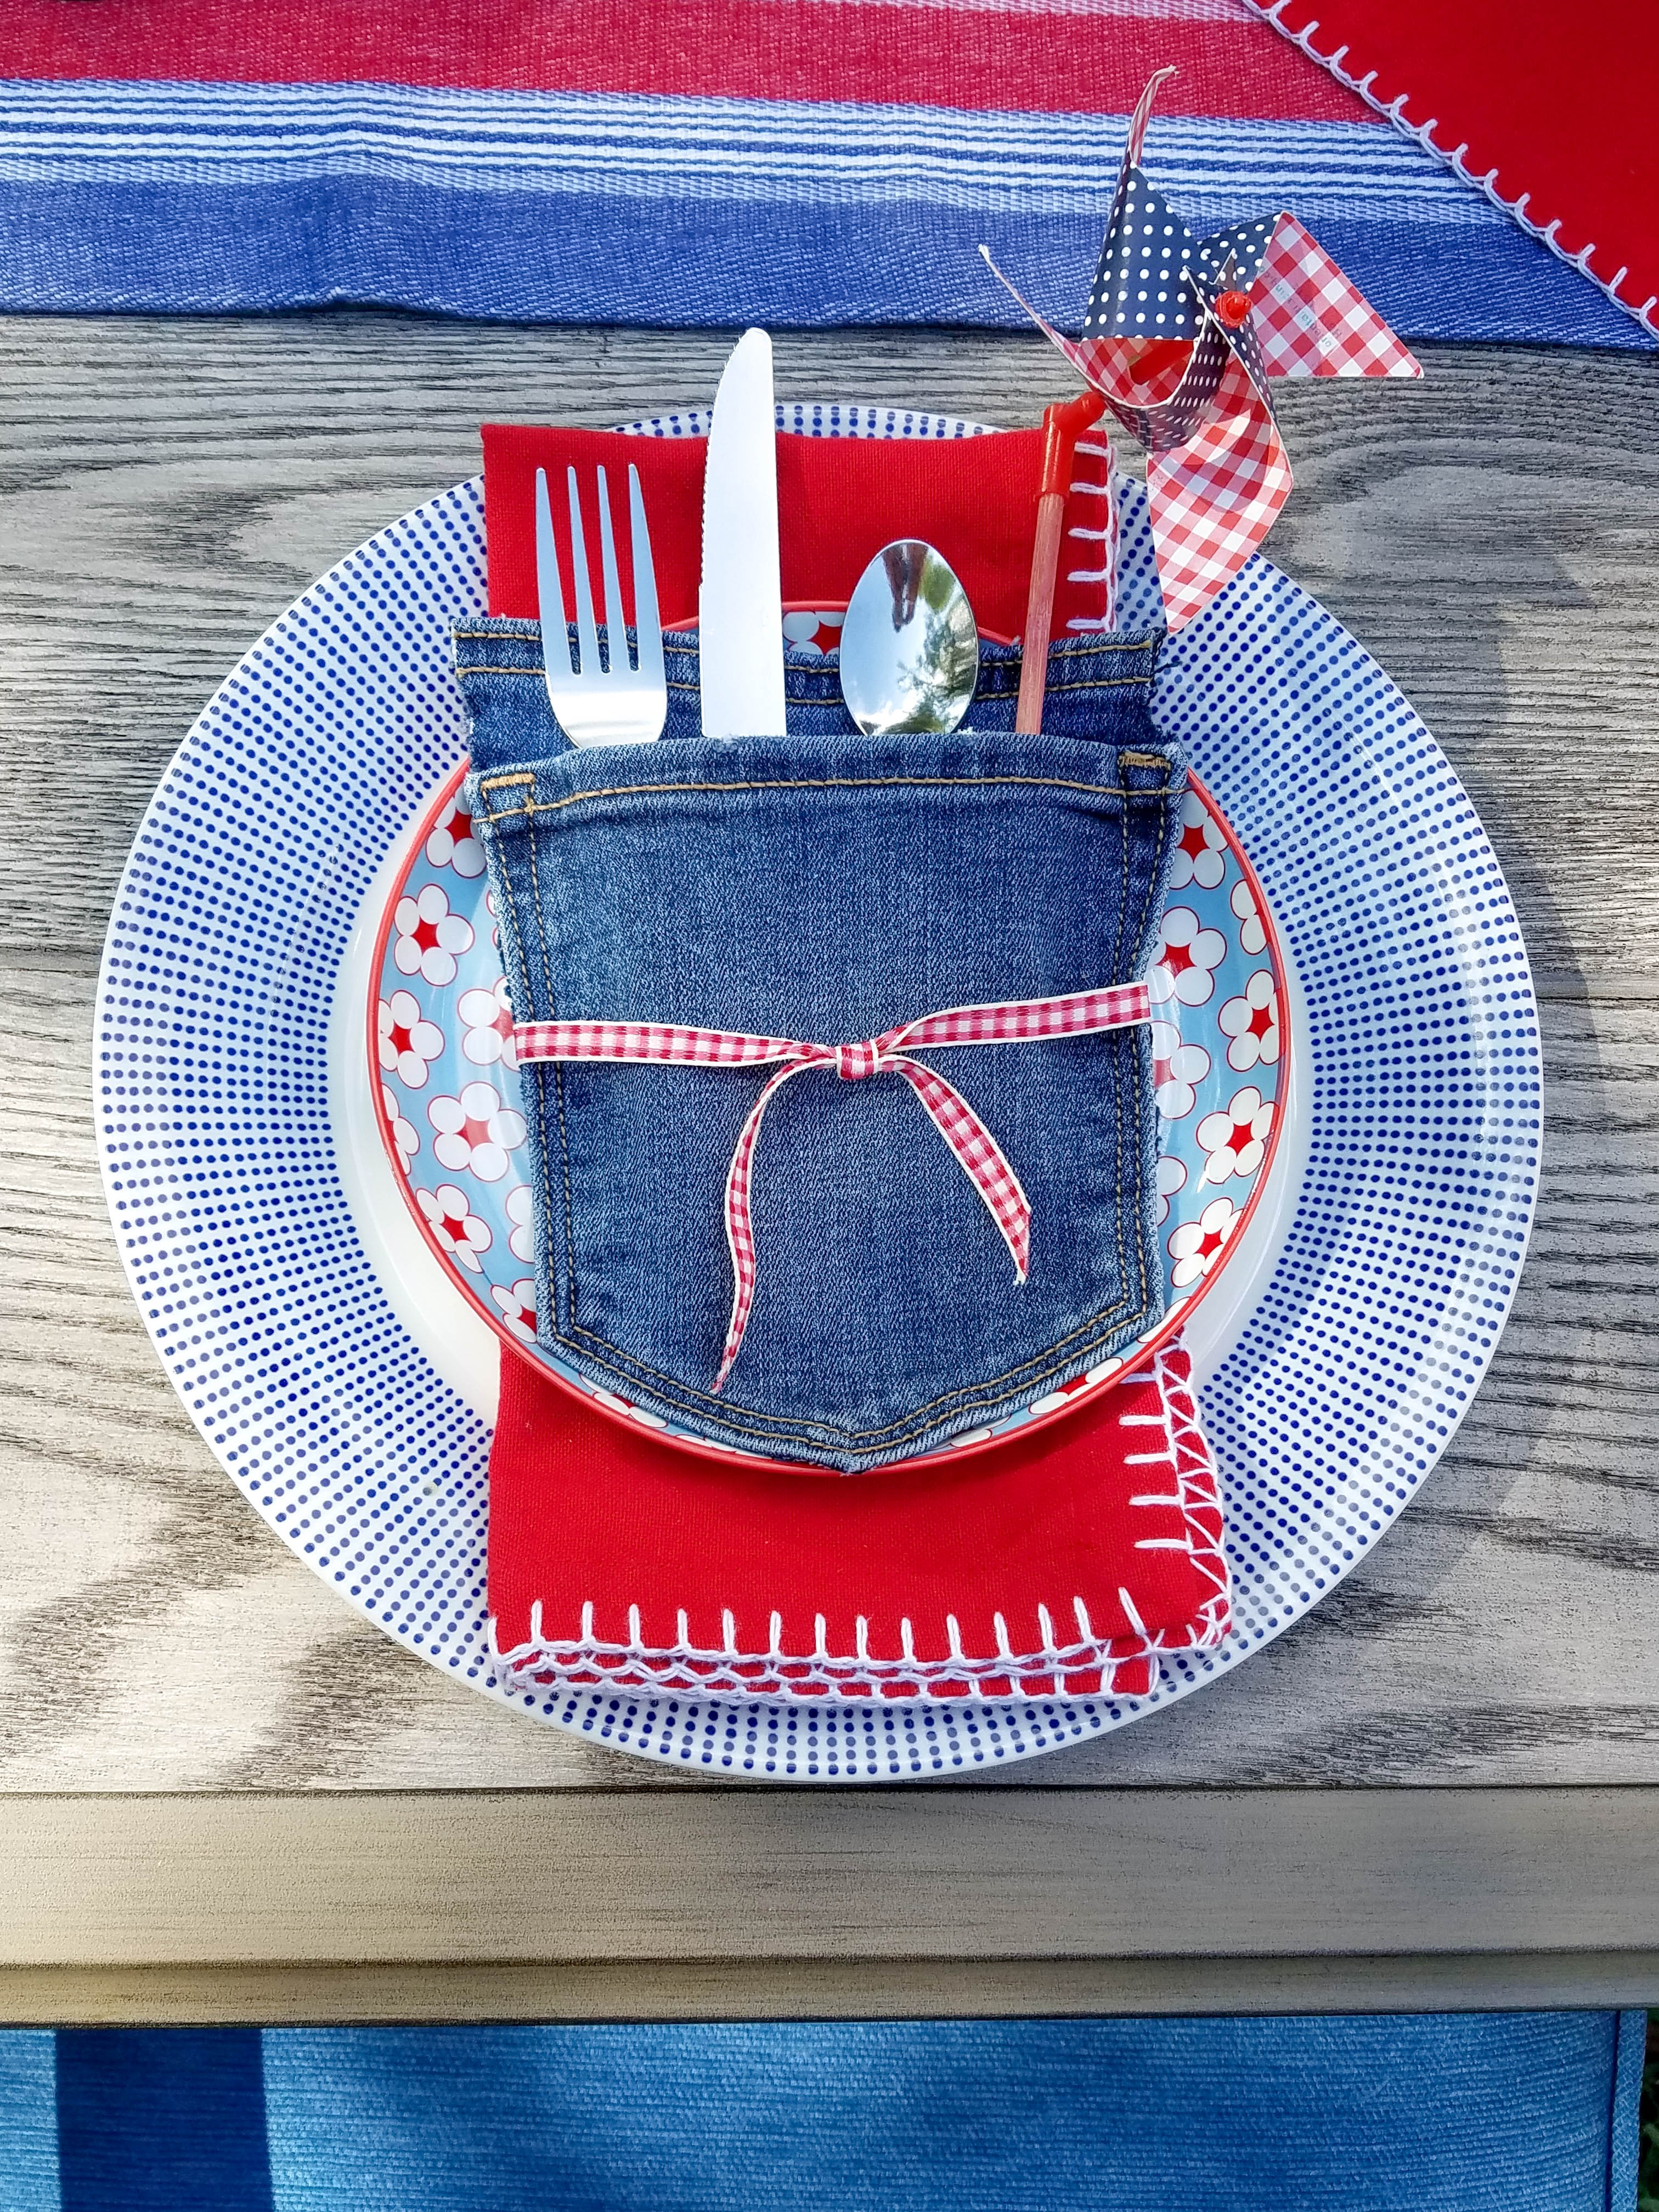 Red whit and blue denim napkin display for memorial day